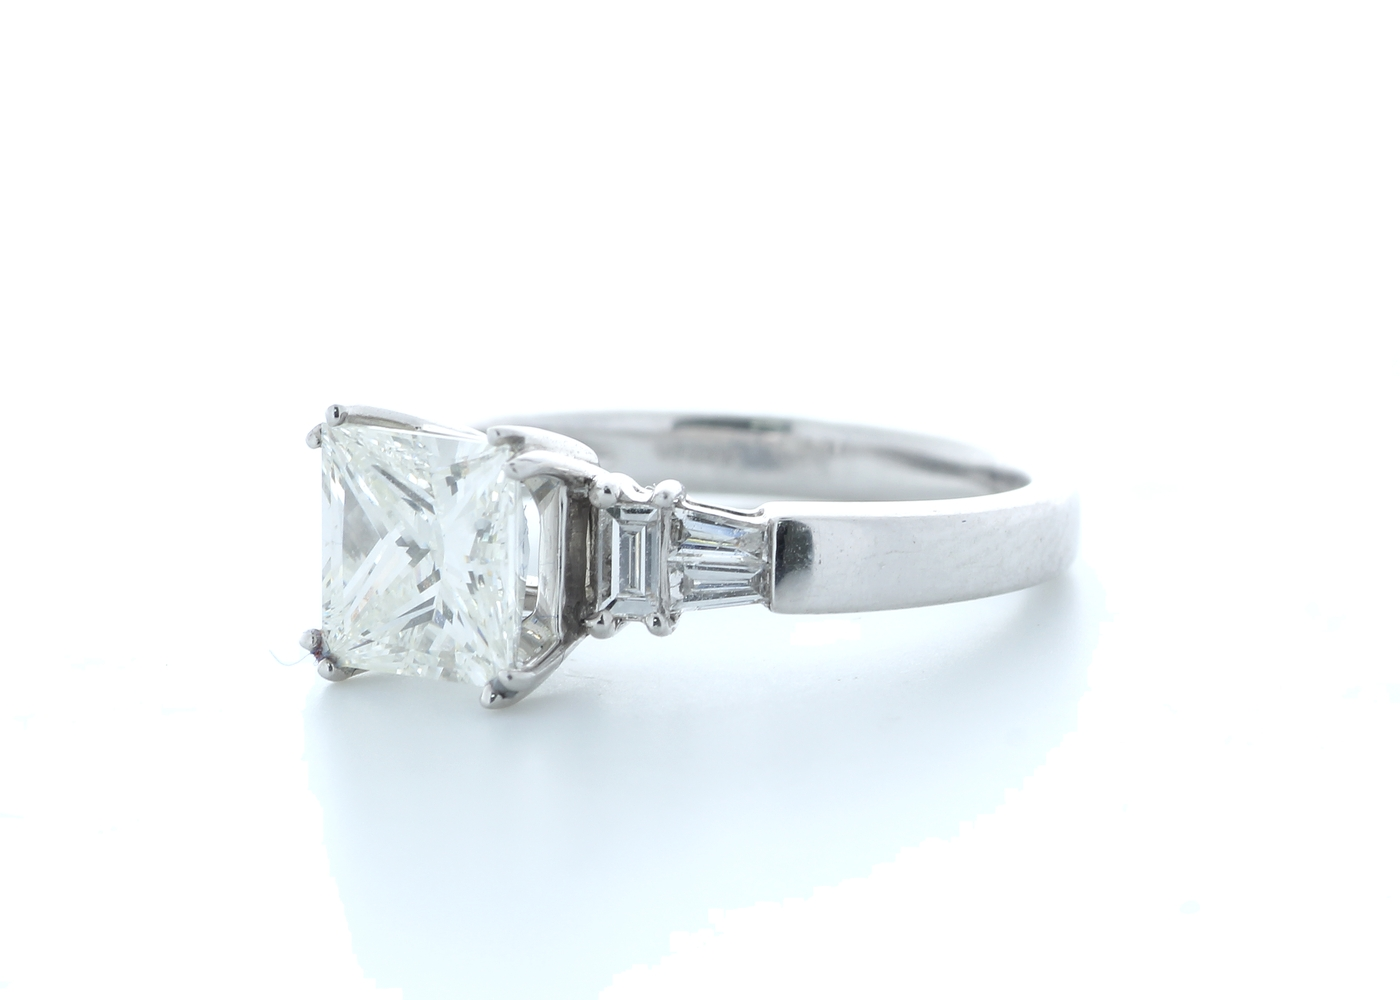 18ct White Gold Princess Cut With Stone Set Shoulders Diamond Ring 1.66 (1.51) Carats - Image 2 of 5